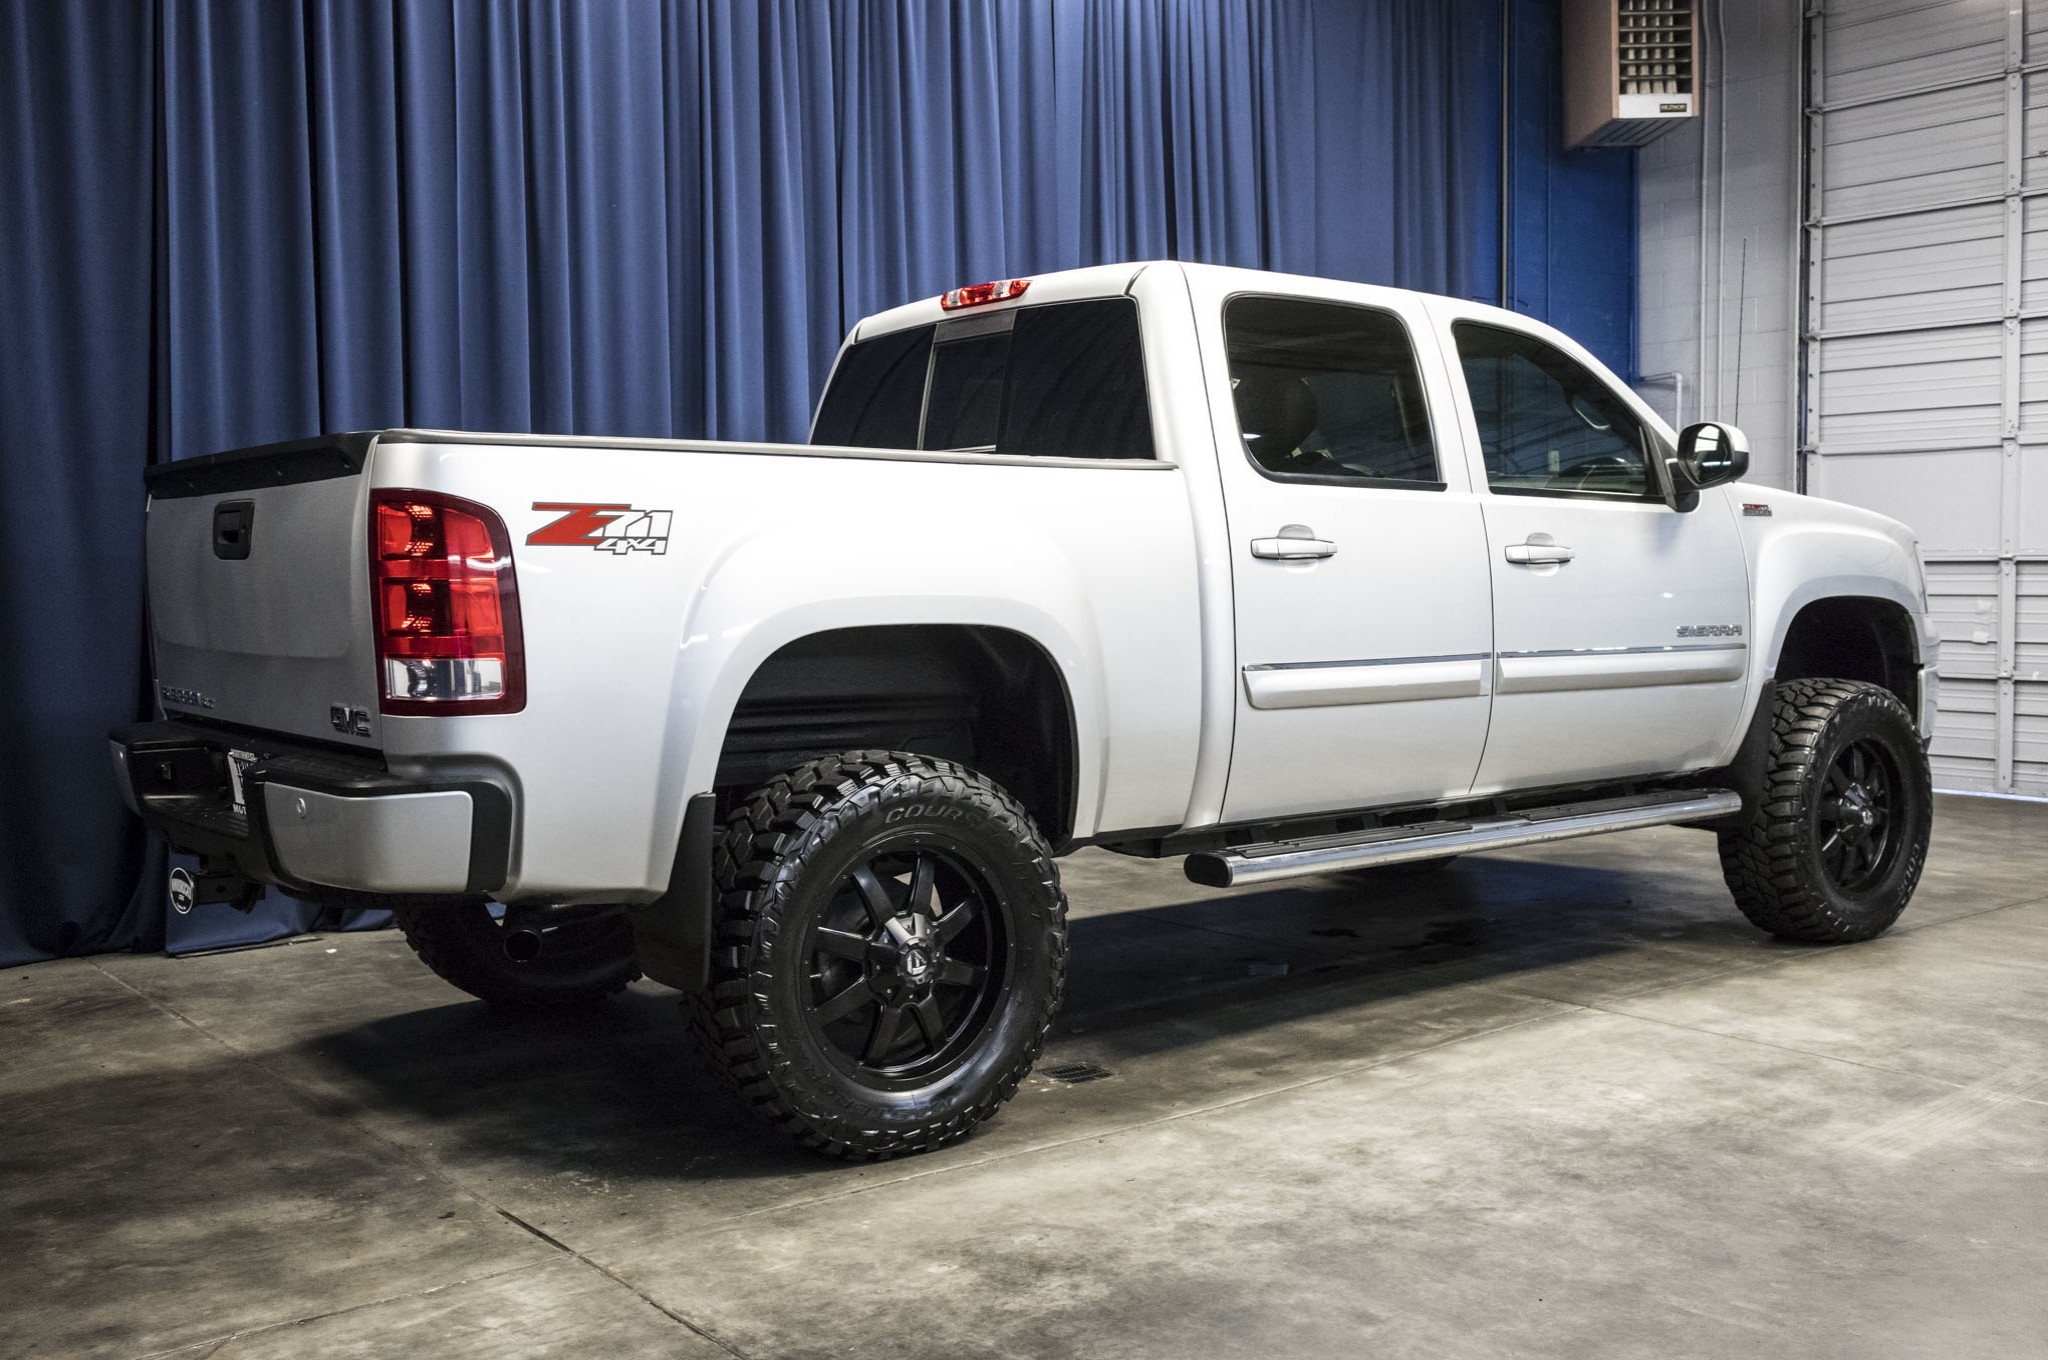 k gmc inventory loaded cab low sle sierra crew miles features owner overview